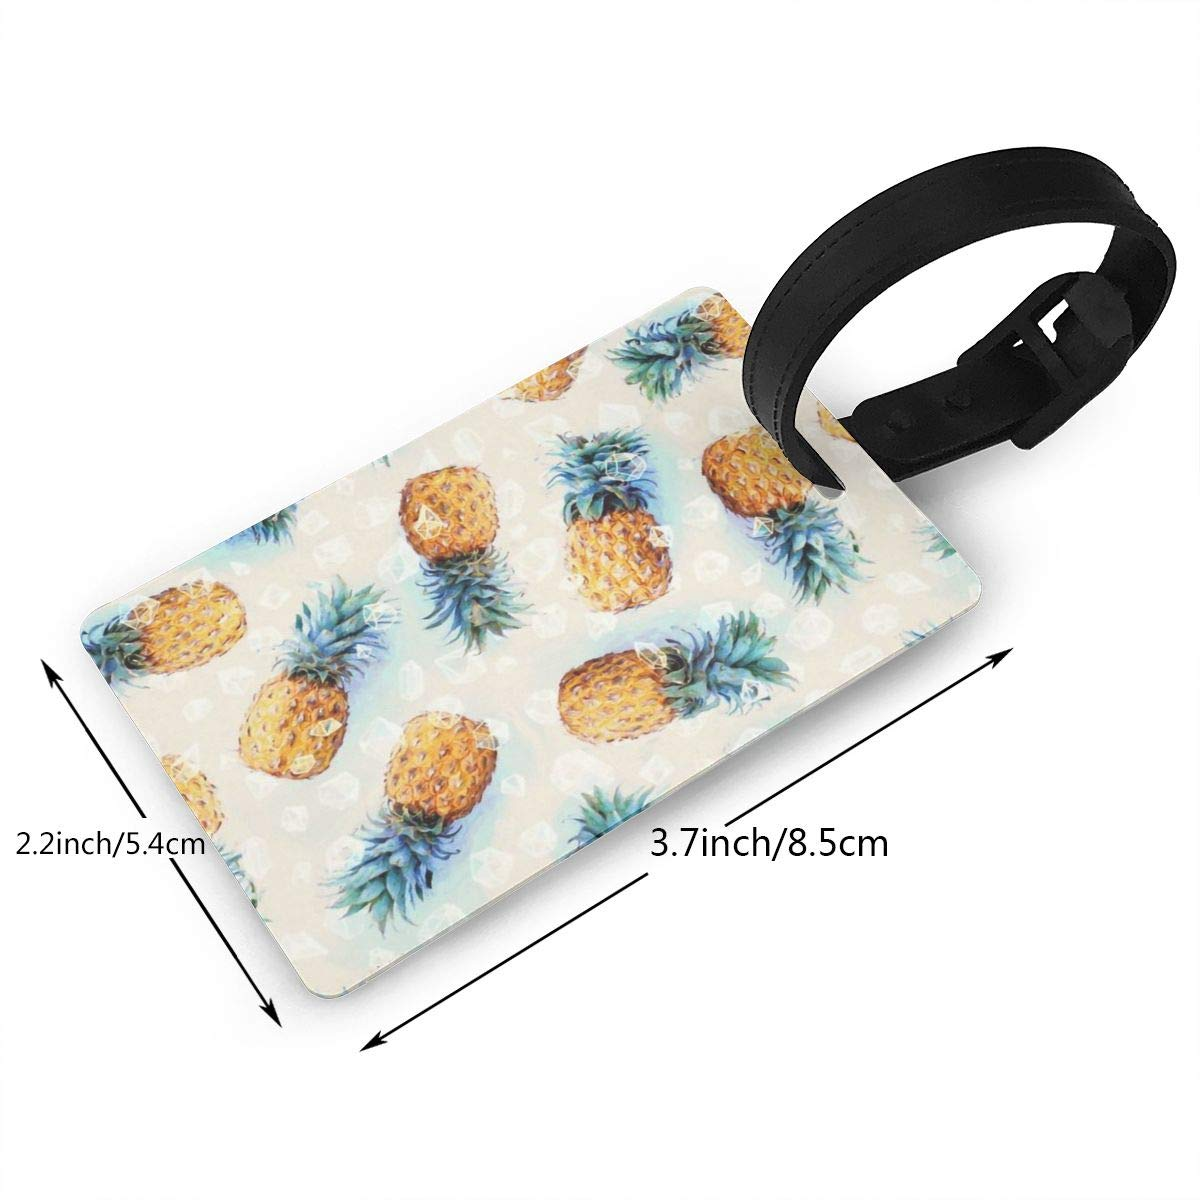 2 Pack Luggage Tags Pineapple Pattern Travel Tags For Suitcase Bag Accessories